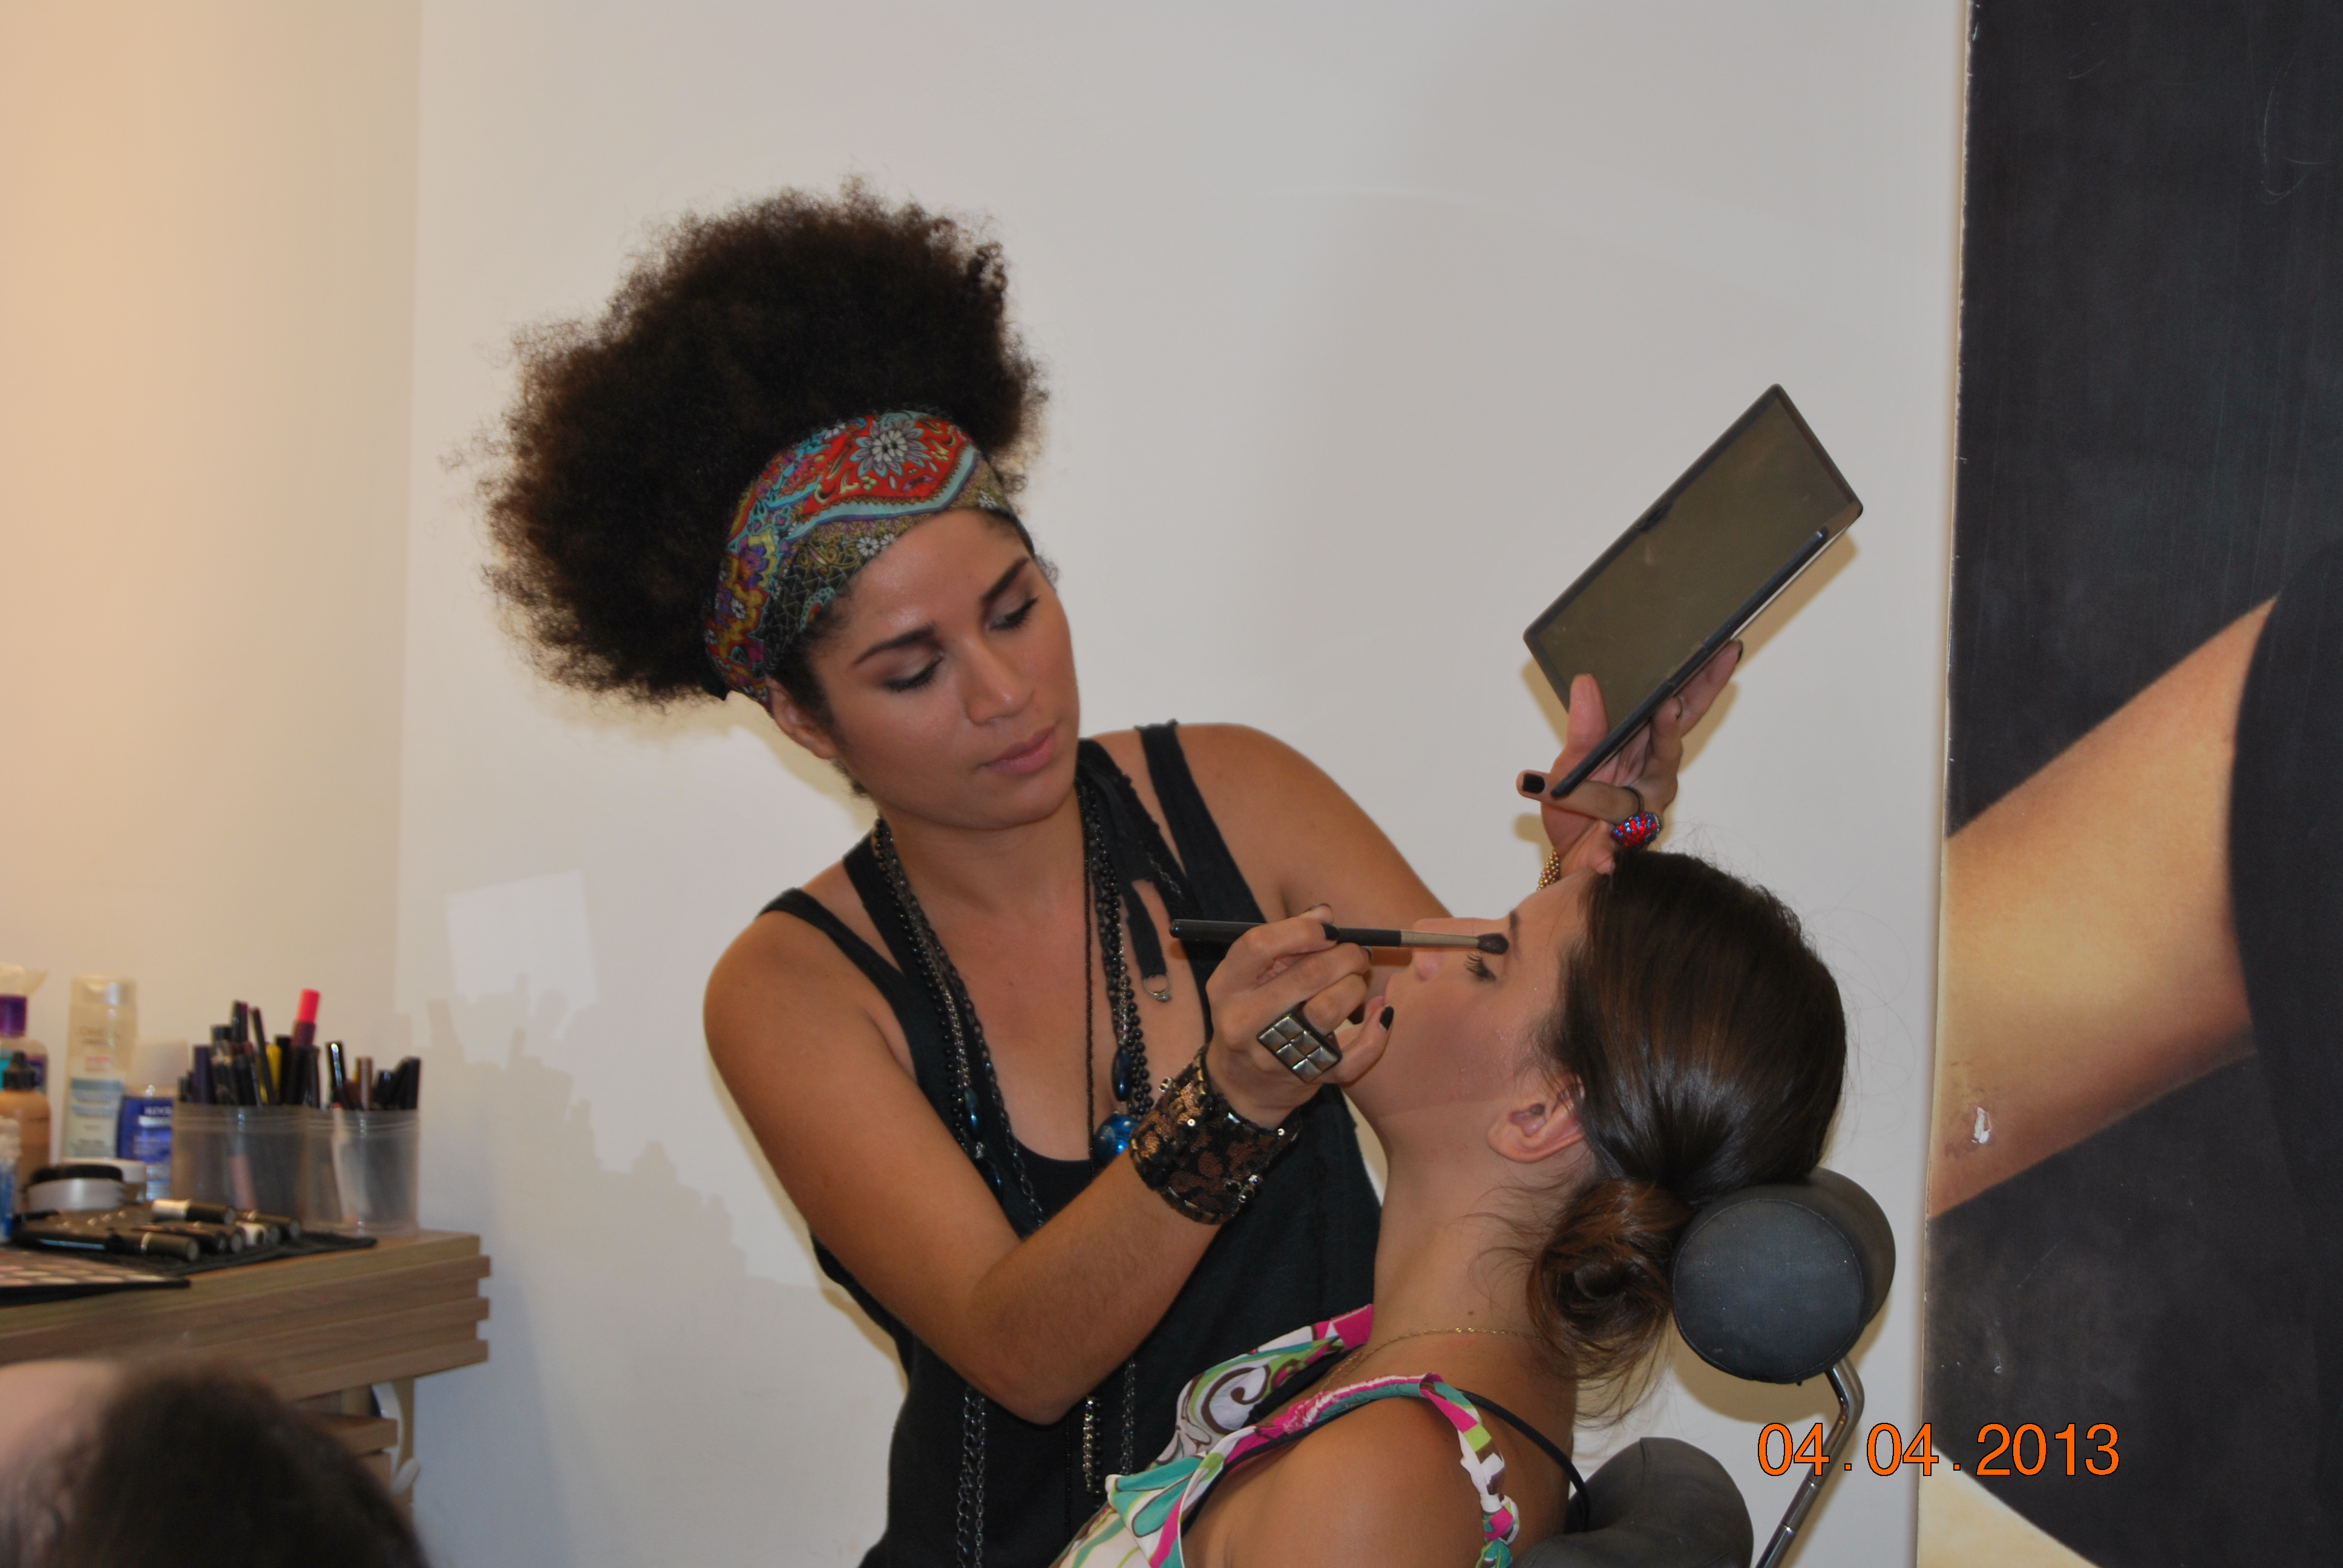 Backstage 6 - Joana D´Arc